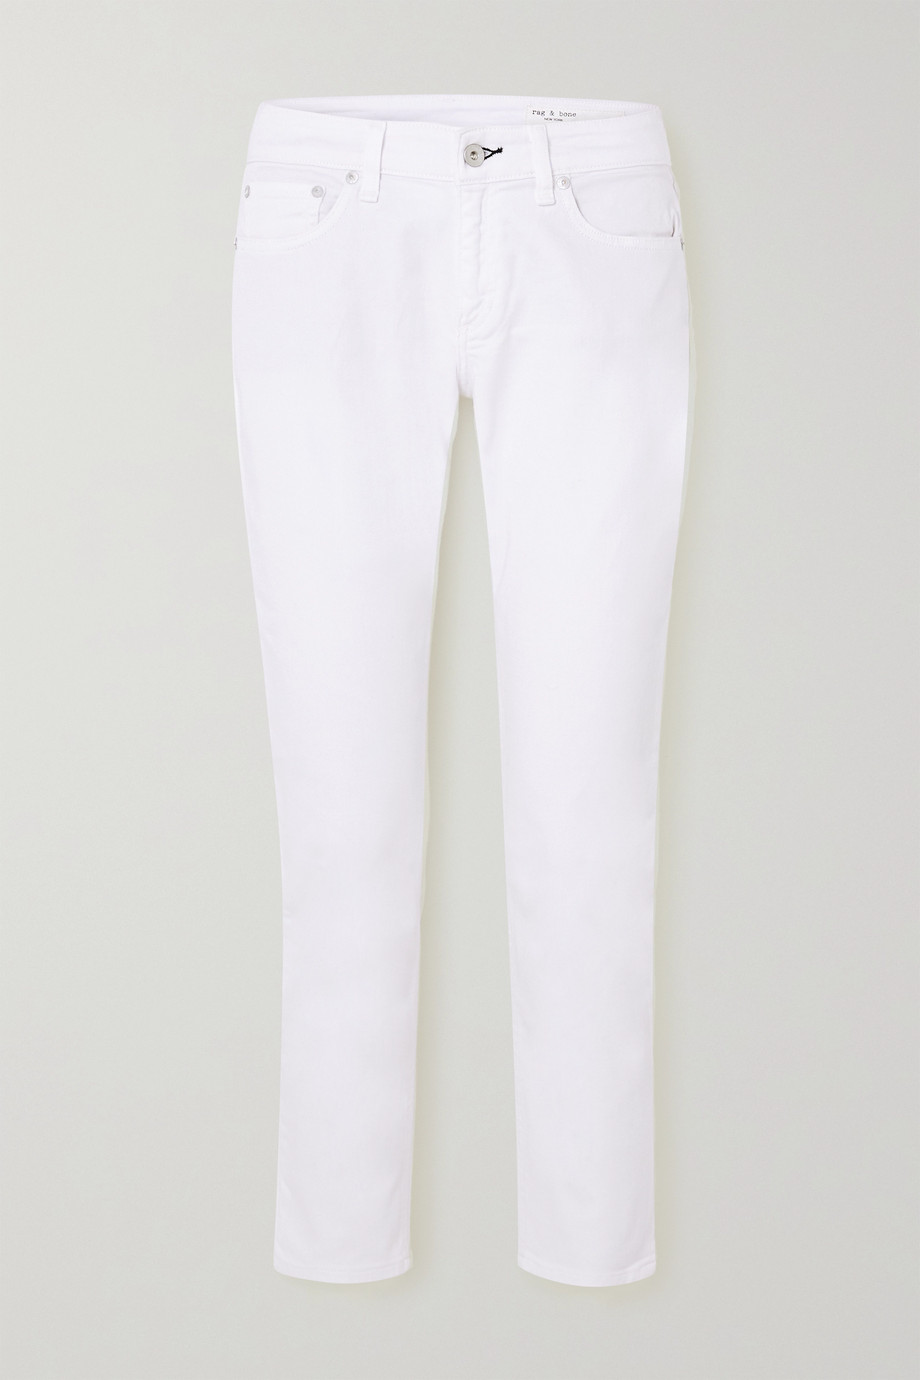 랙앤본 Rag & Bone Dre low-rise straight-leg jeans,White